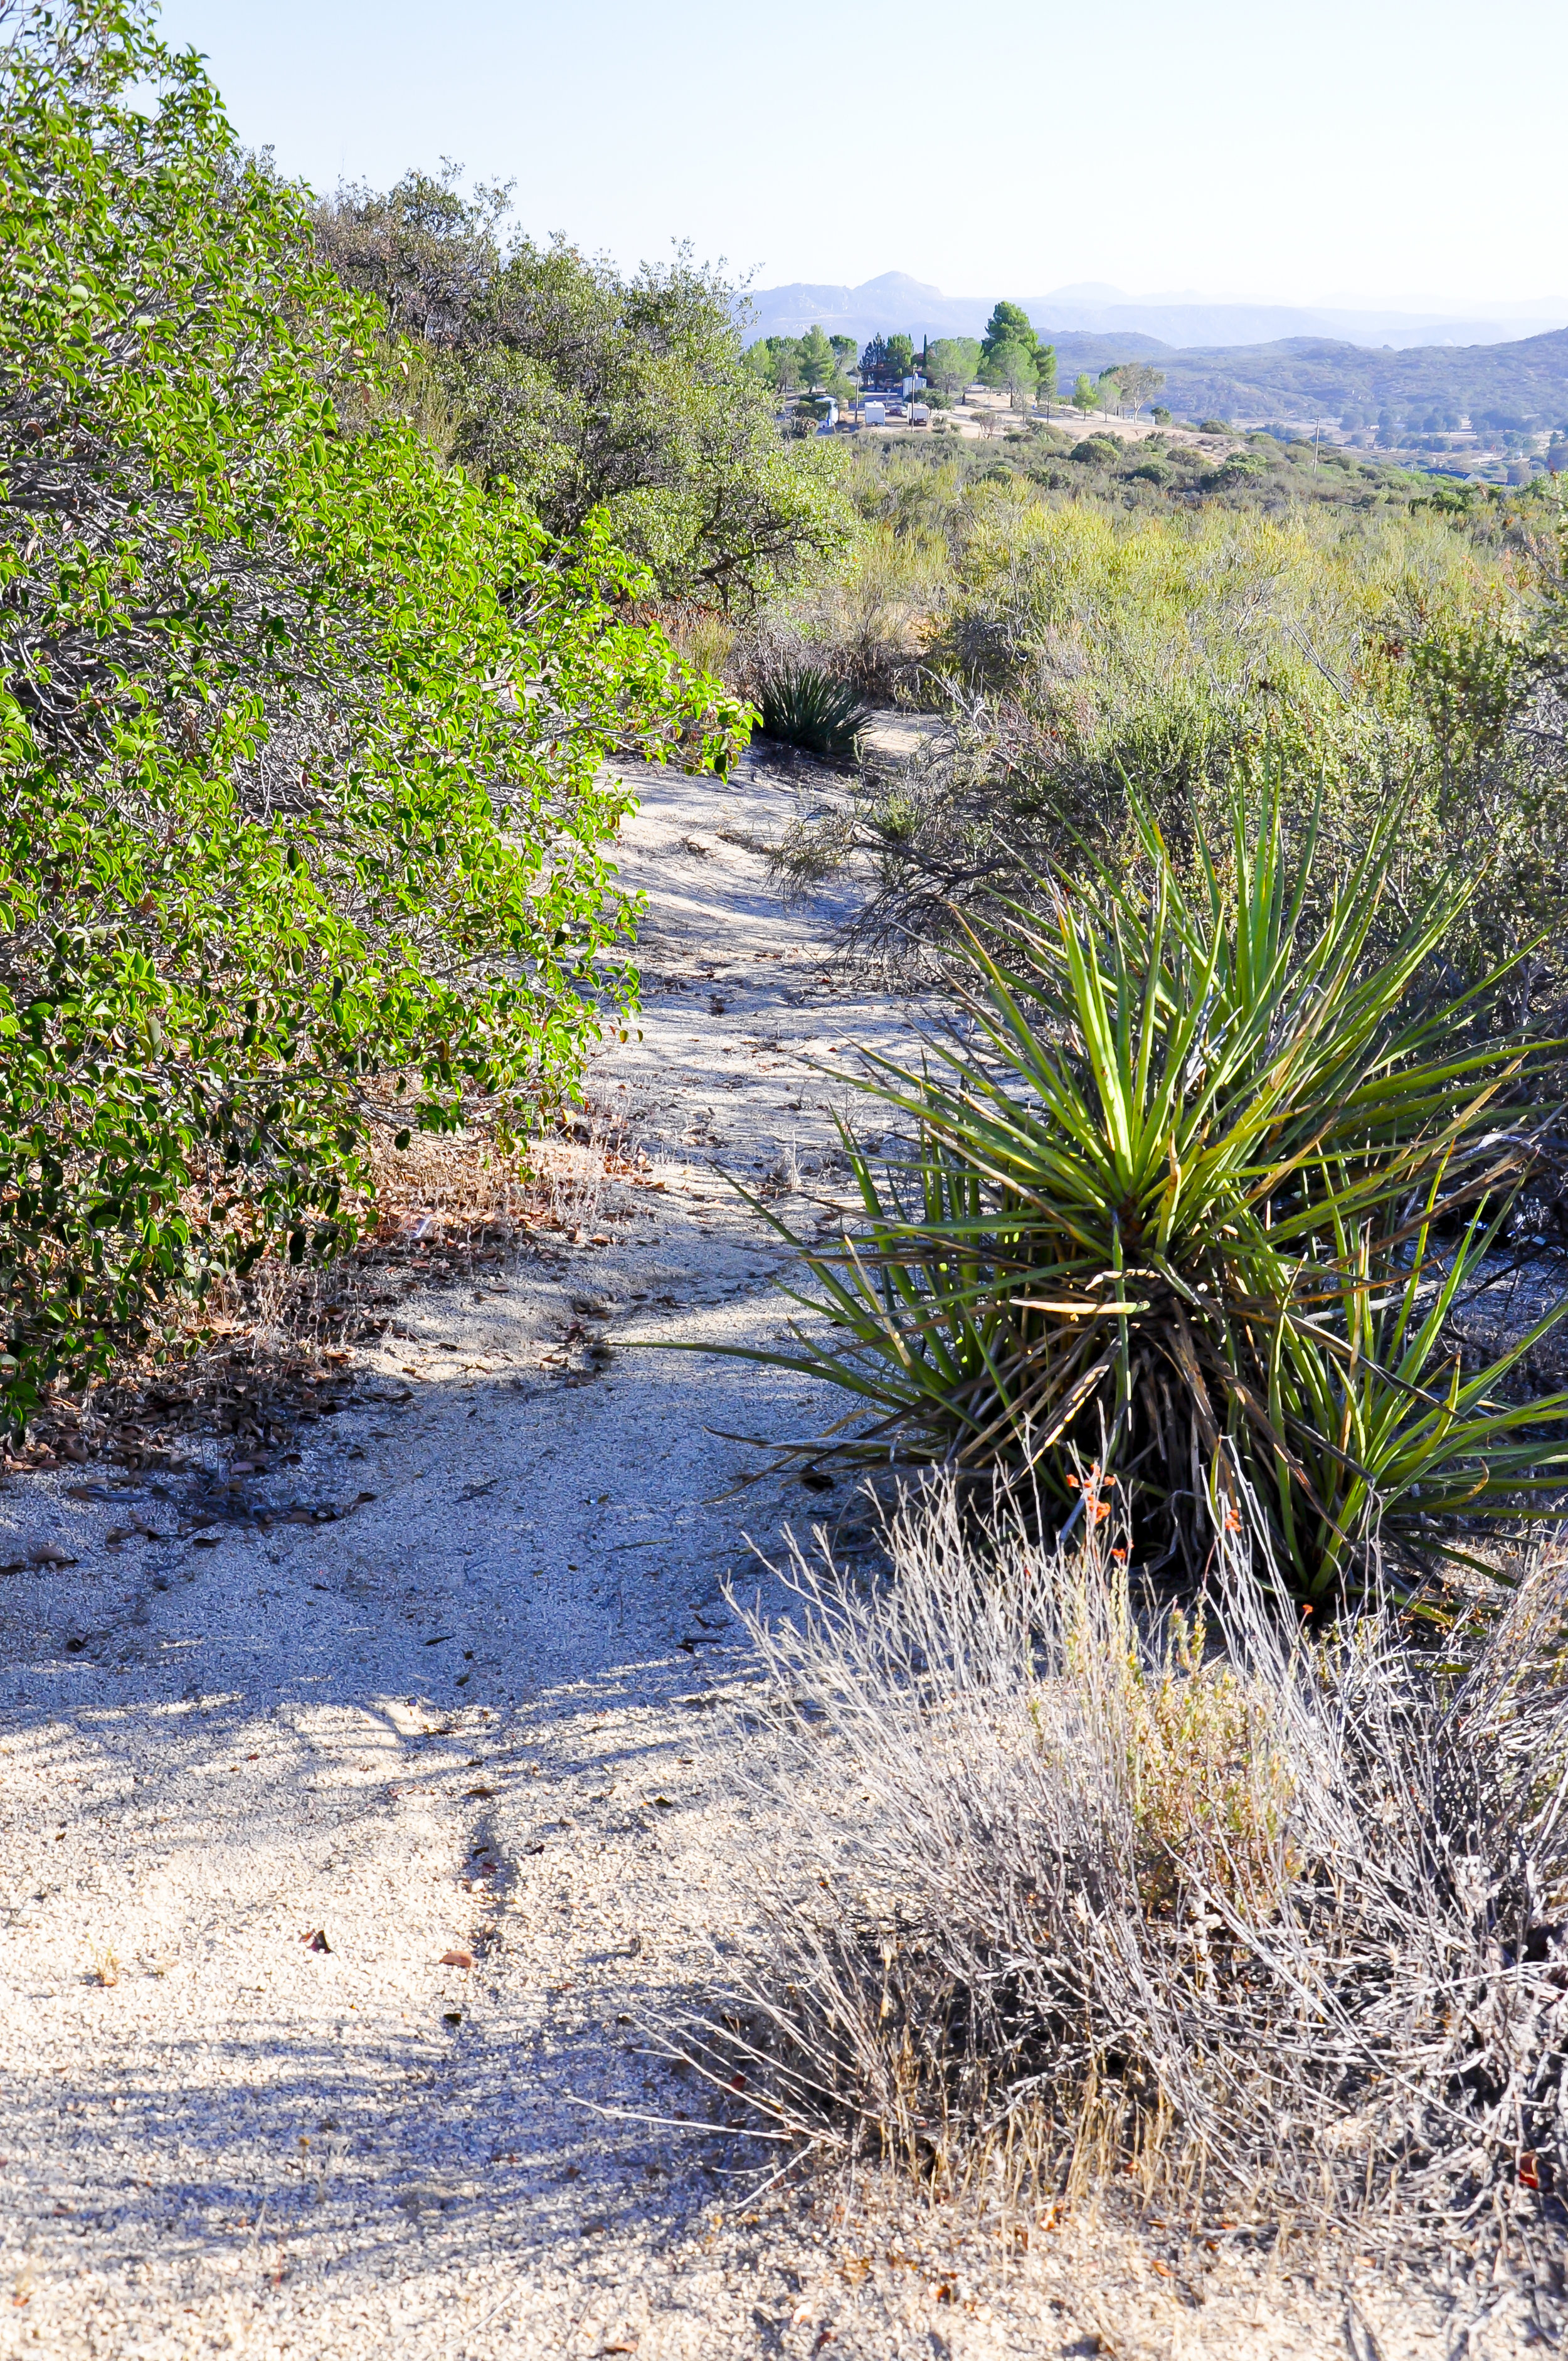 The path to recovery begins at Freedom Ranch.